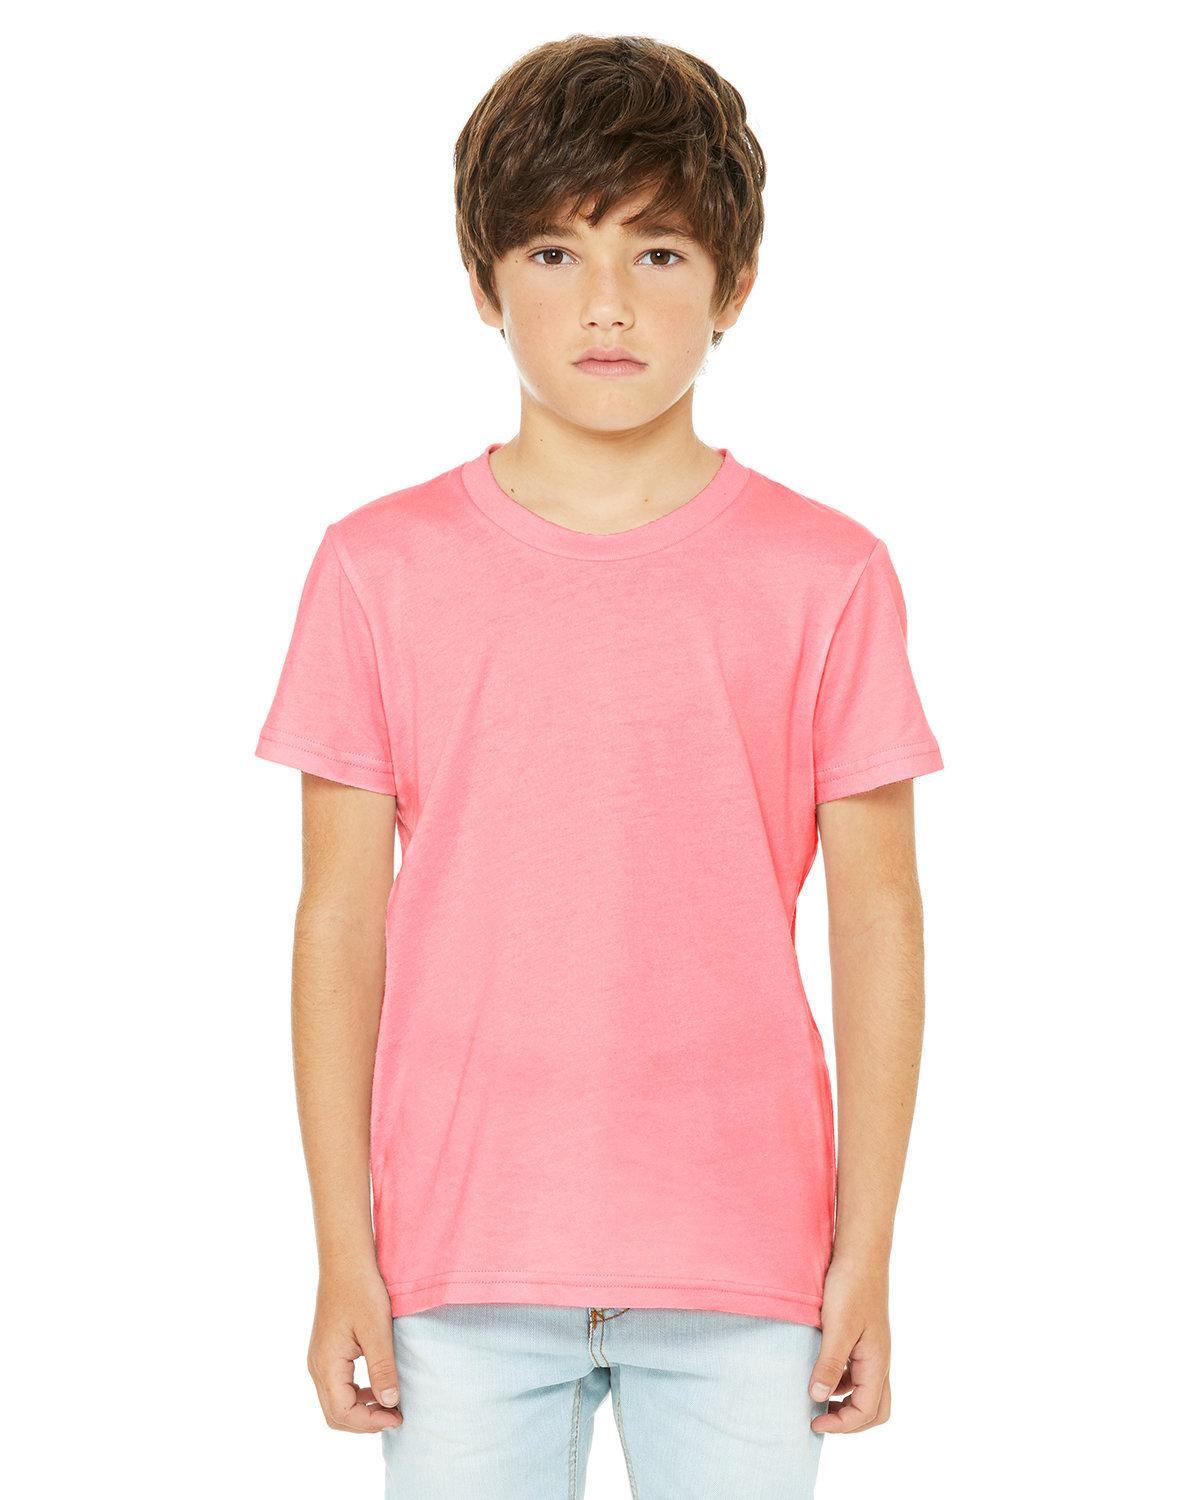 Bella + Canvas Youth Jersey T-Shirt NEON PINK